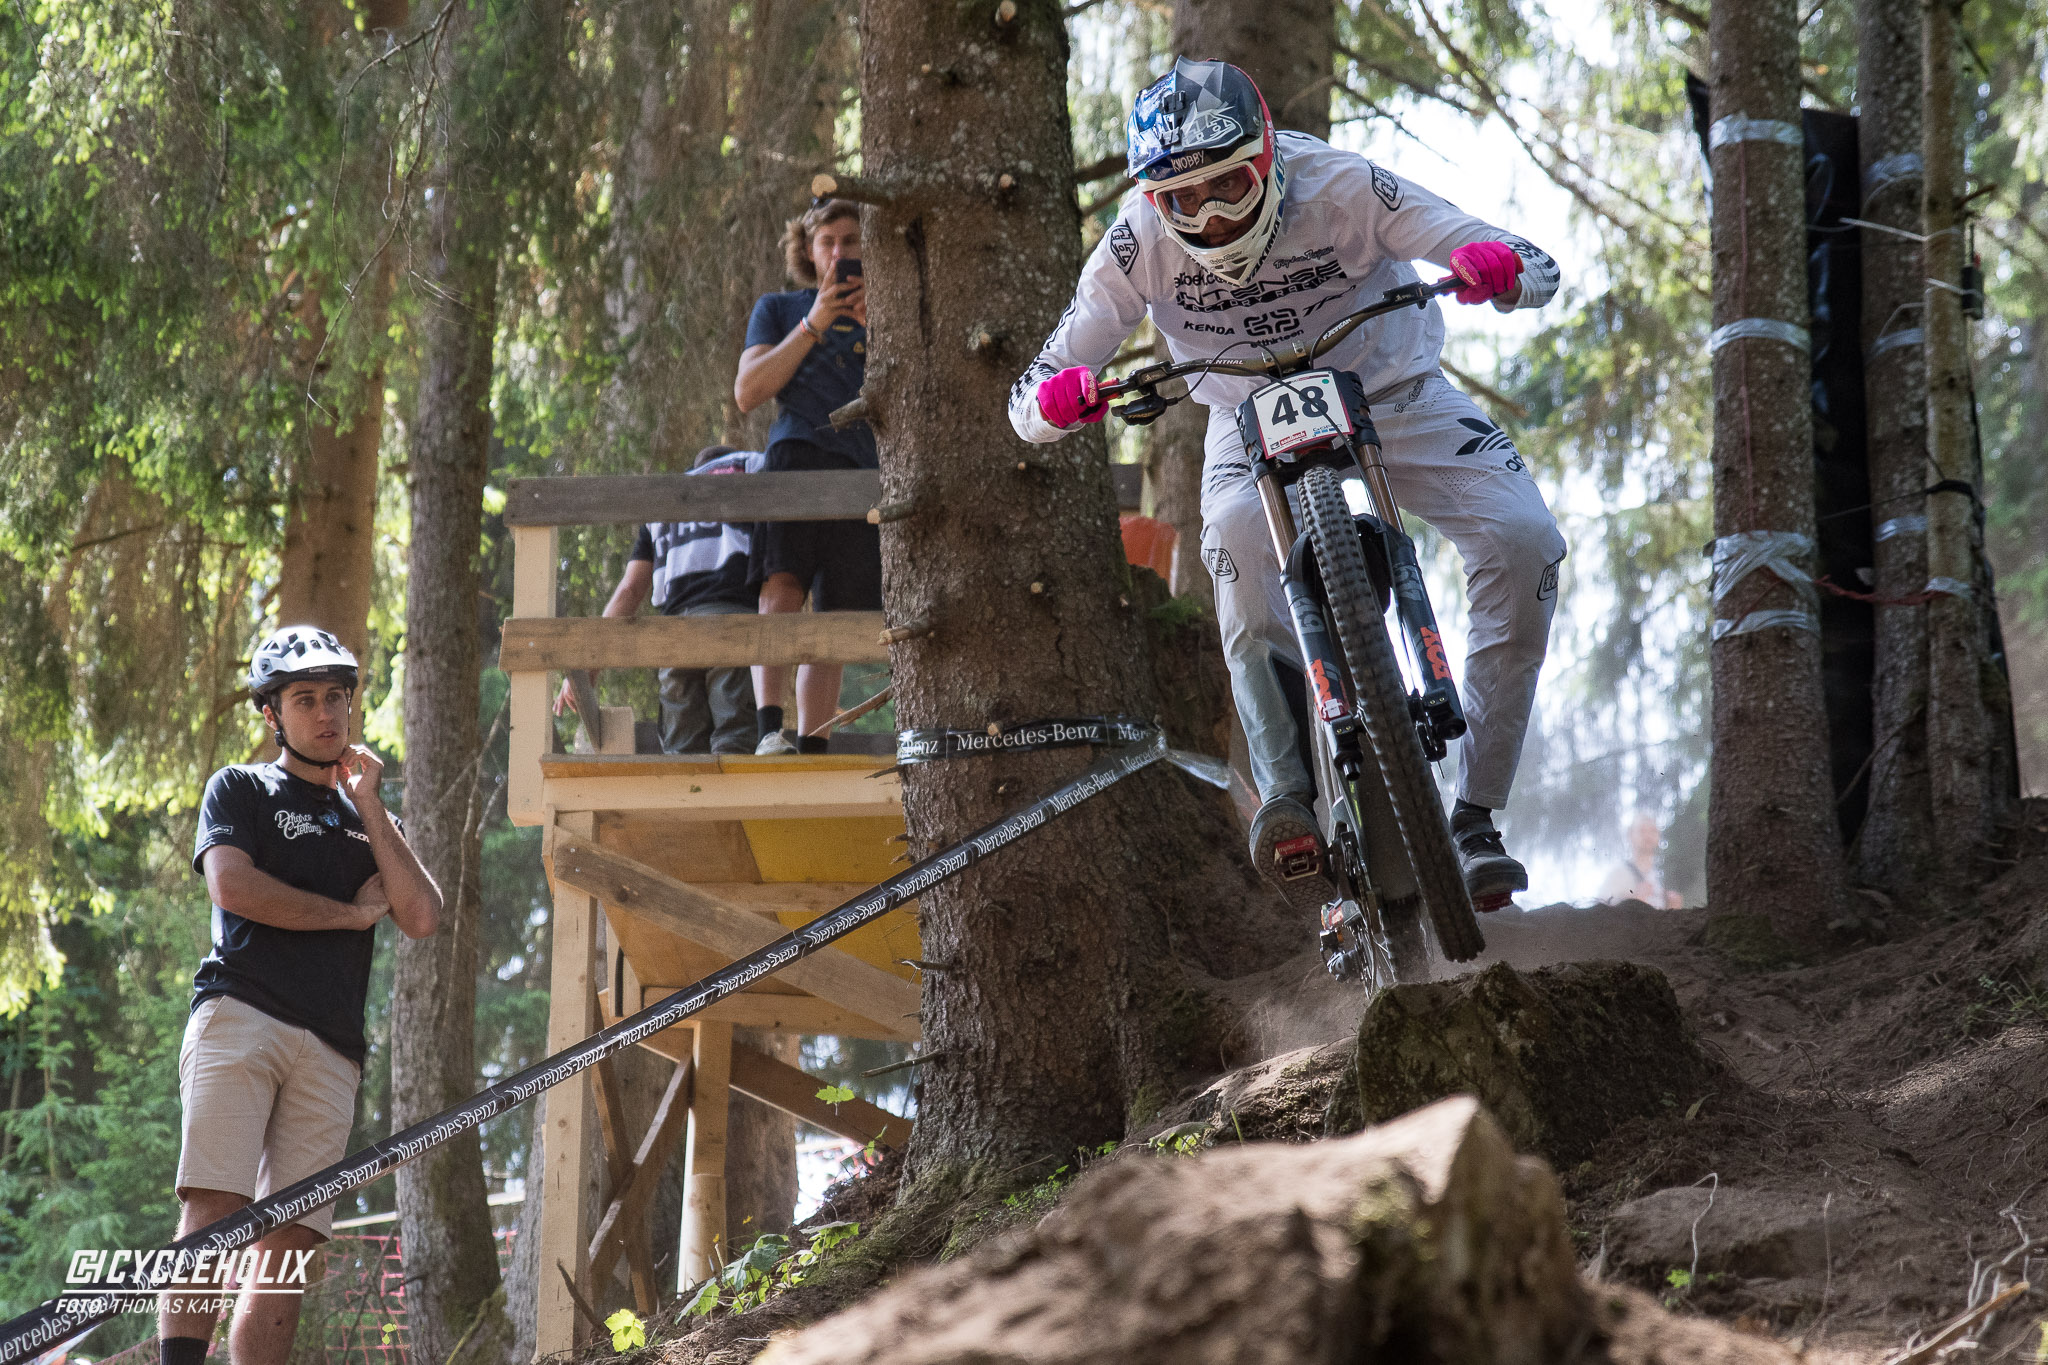 2019 Downhill Worldcup Leogang Finale Action 15 Cycleholix